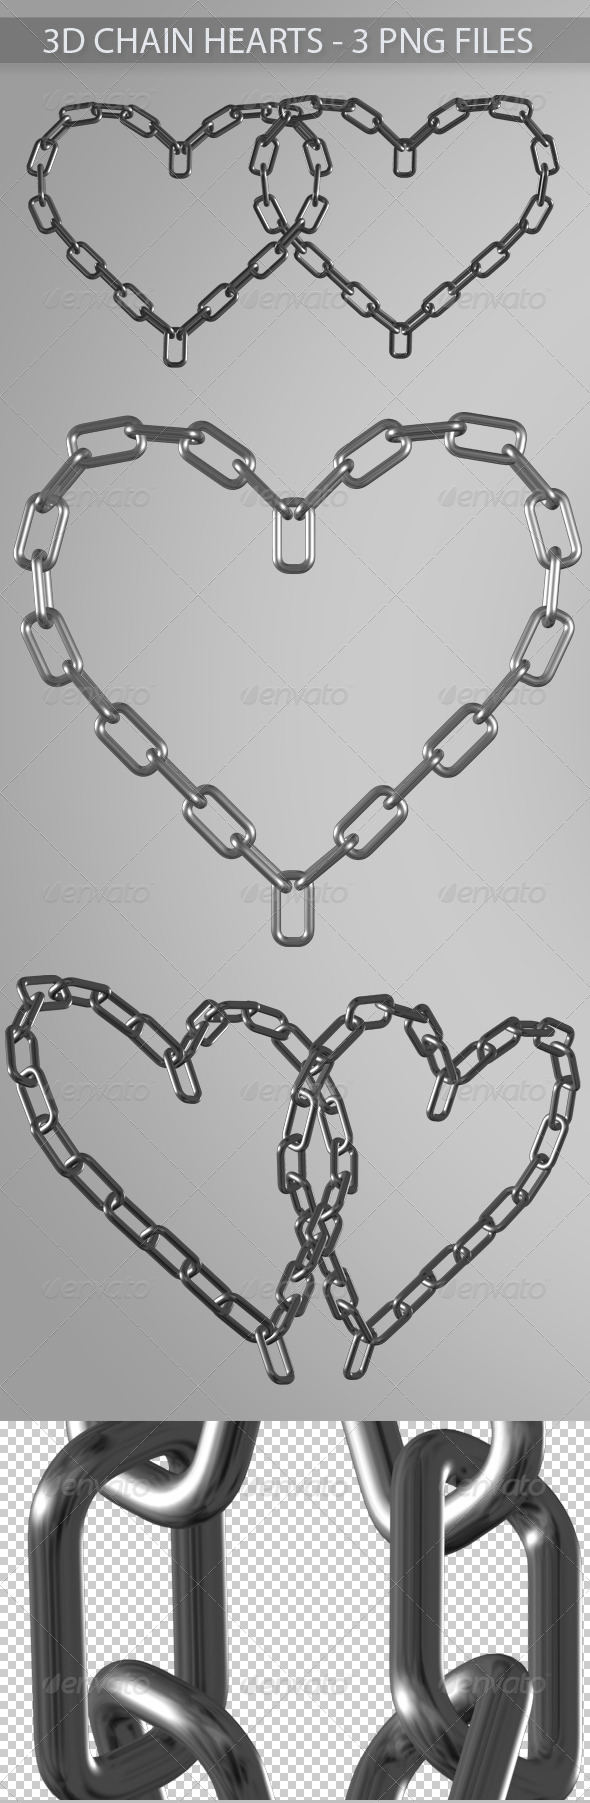 3D Chain Hearts - Objects 3D Renders